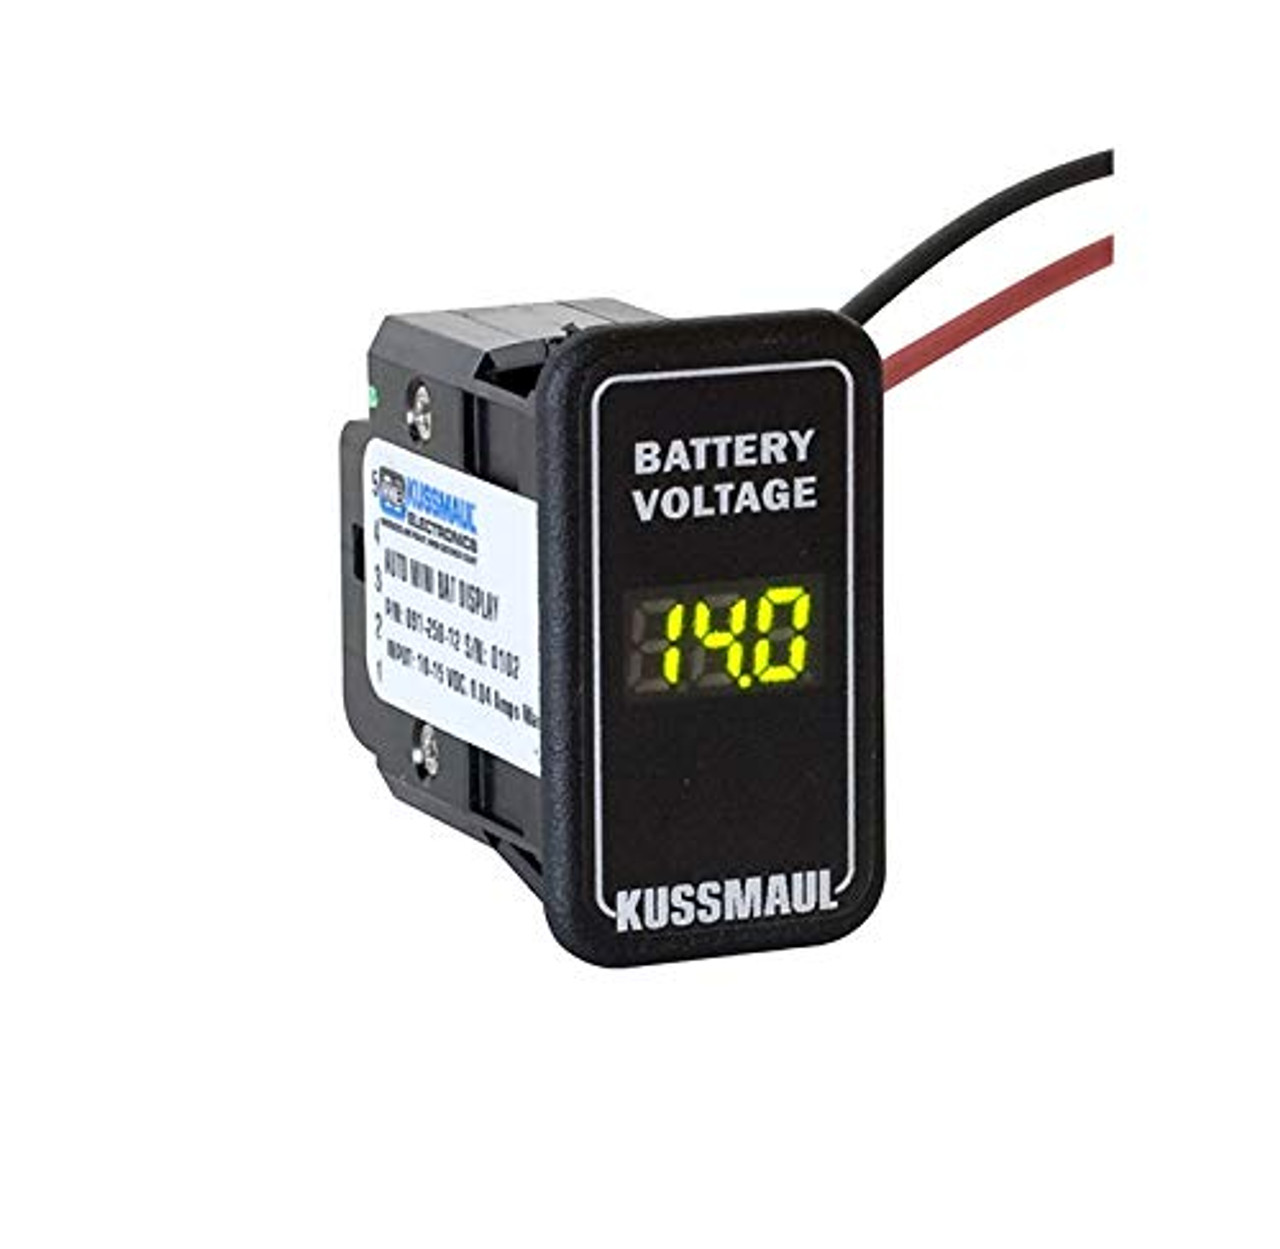 Auto Mini Battery Display Module for Switch Knock-Outs | 0309X94V8MM